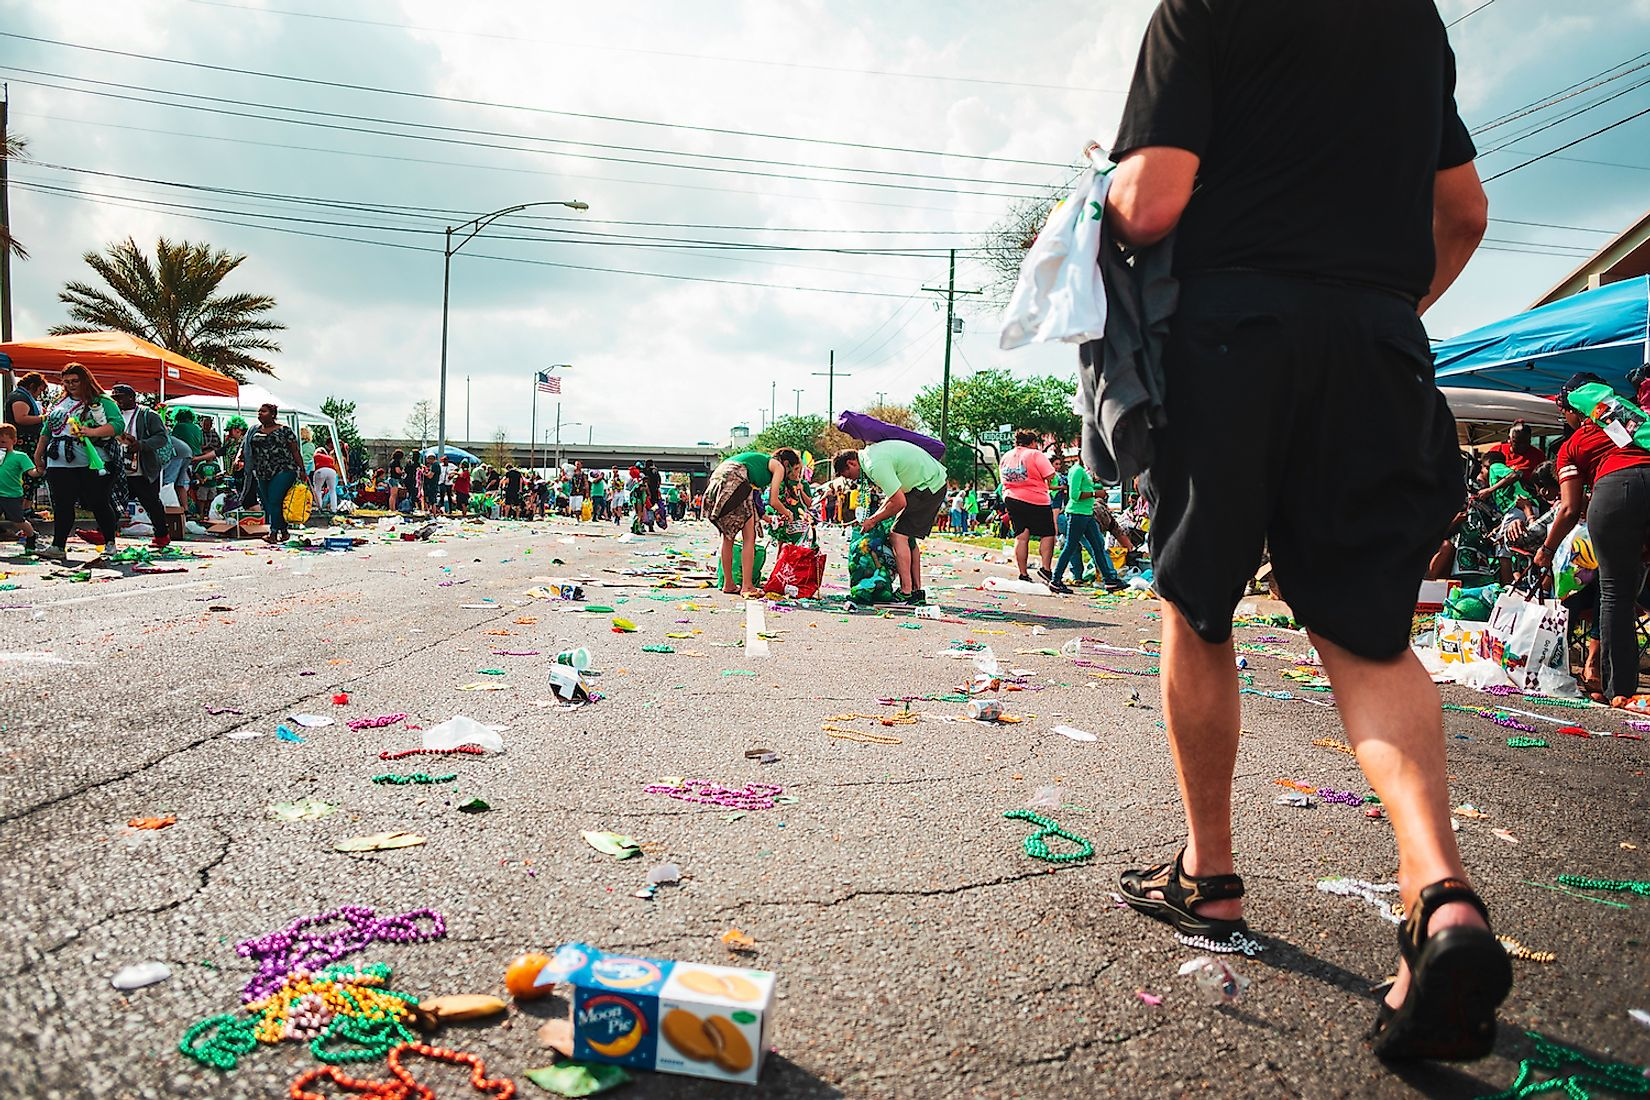 Streets covered in trash in the aftermath of the Cabbage Festival on St. Patrick's Day. Image credit: Eloresnorwood/Shutterstock.com